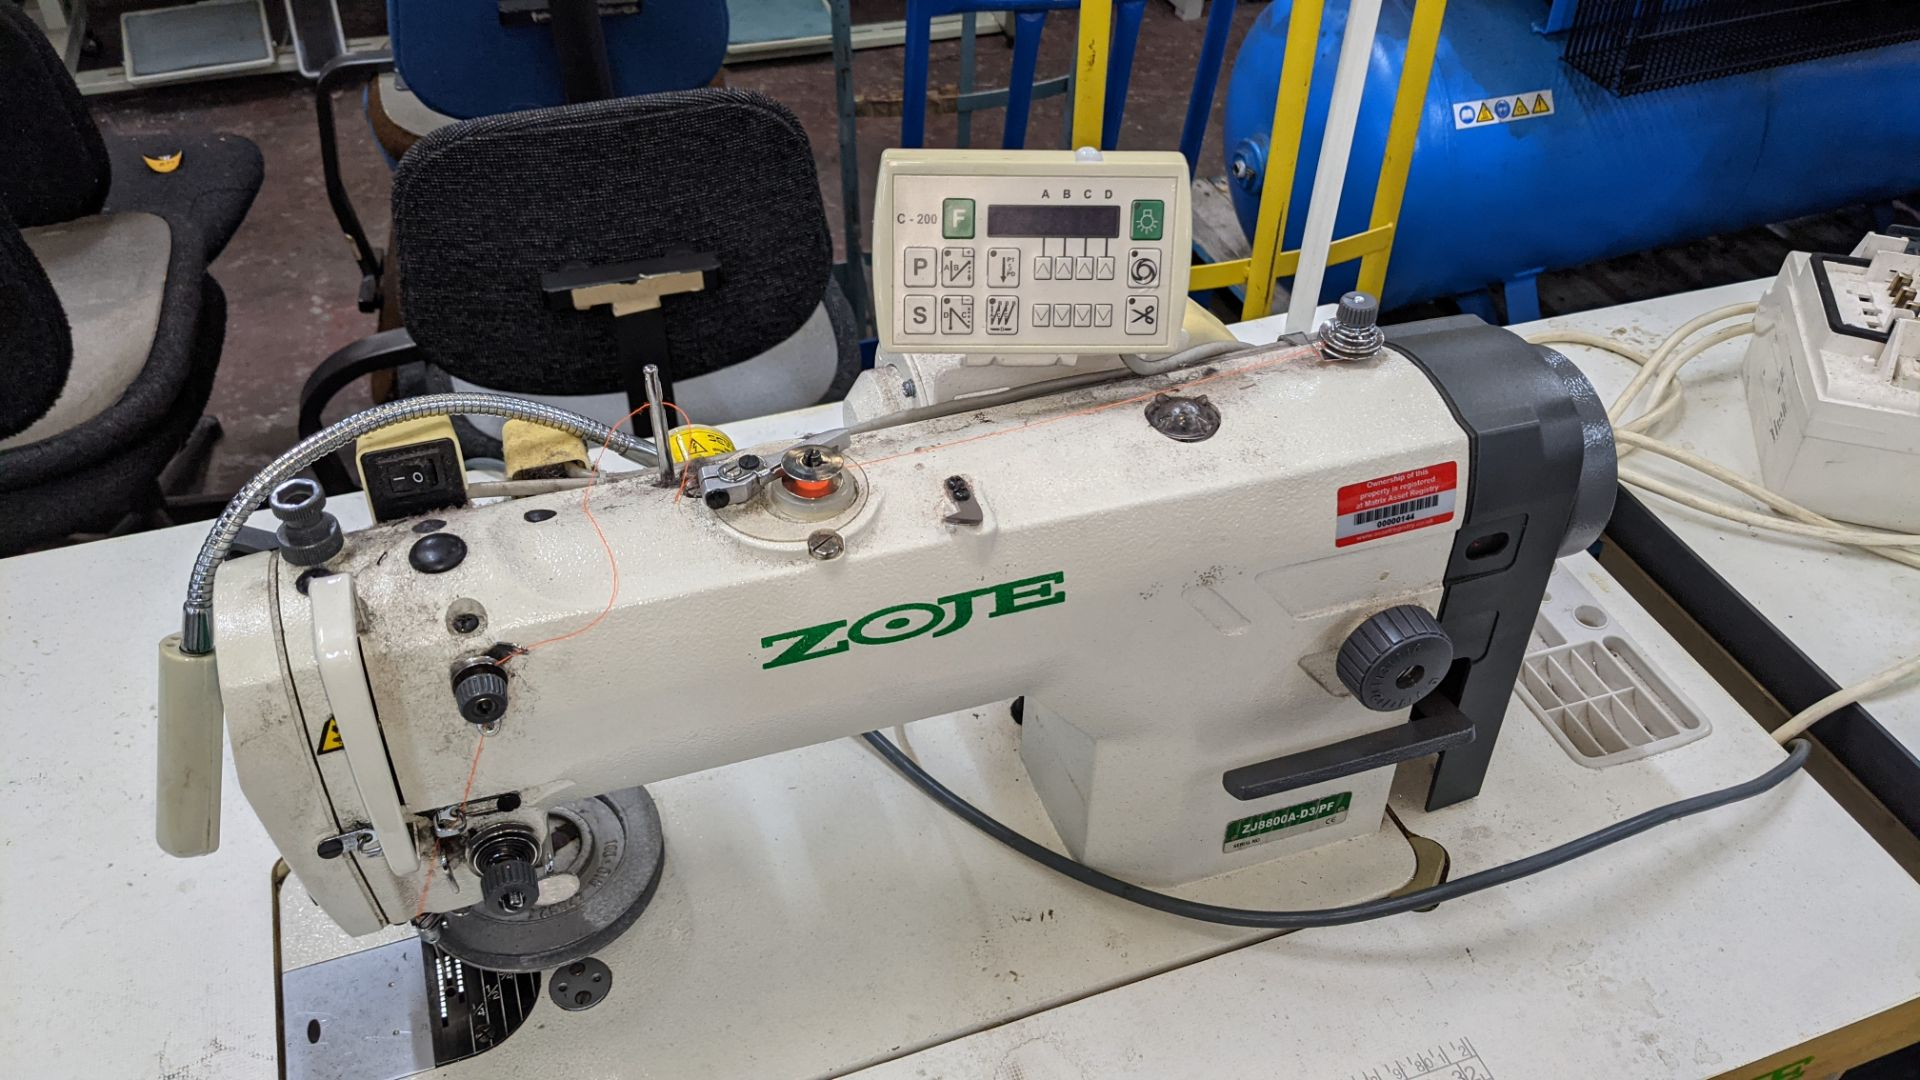 Zoje model ZJ8800A-D3B/PF sewing machine with C-200 controller - Image 8 of 16